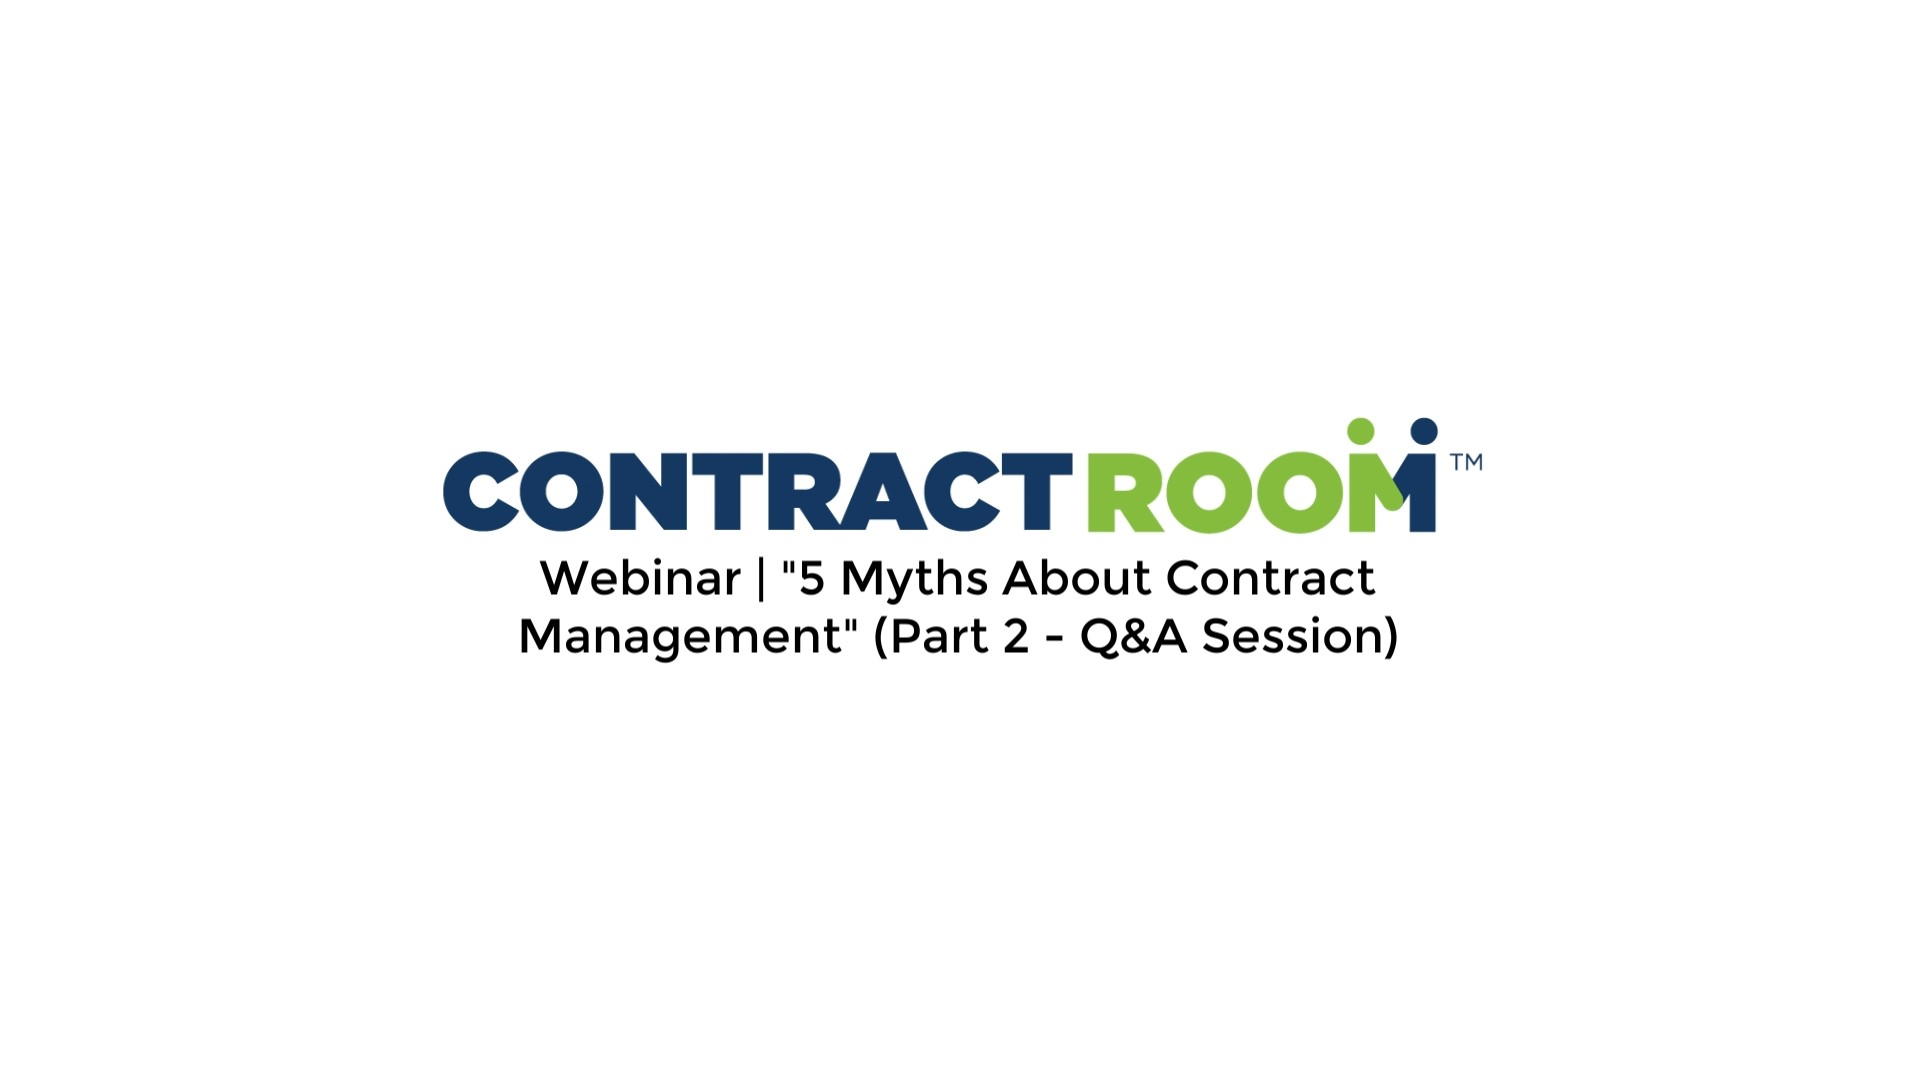 Webinar _ ContractRoom _ 5 Myths About Contract Management - Part 2 - Q_A Session